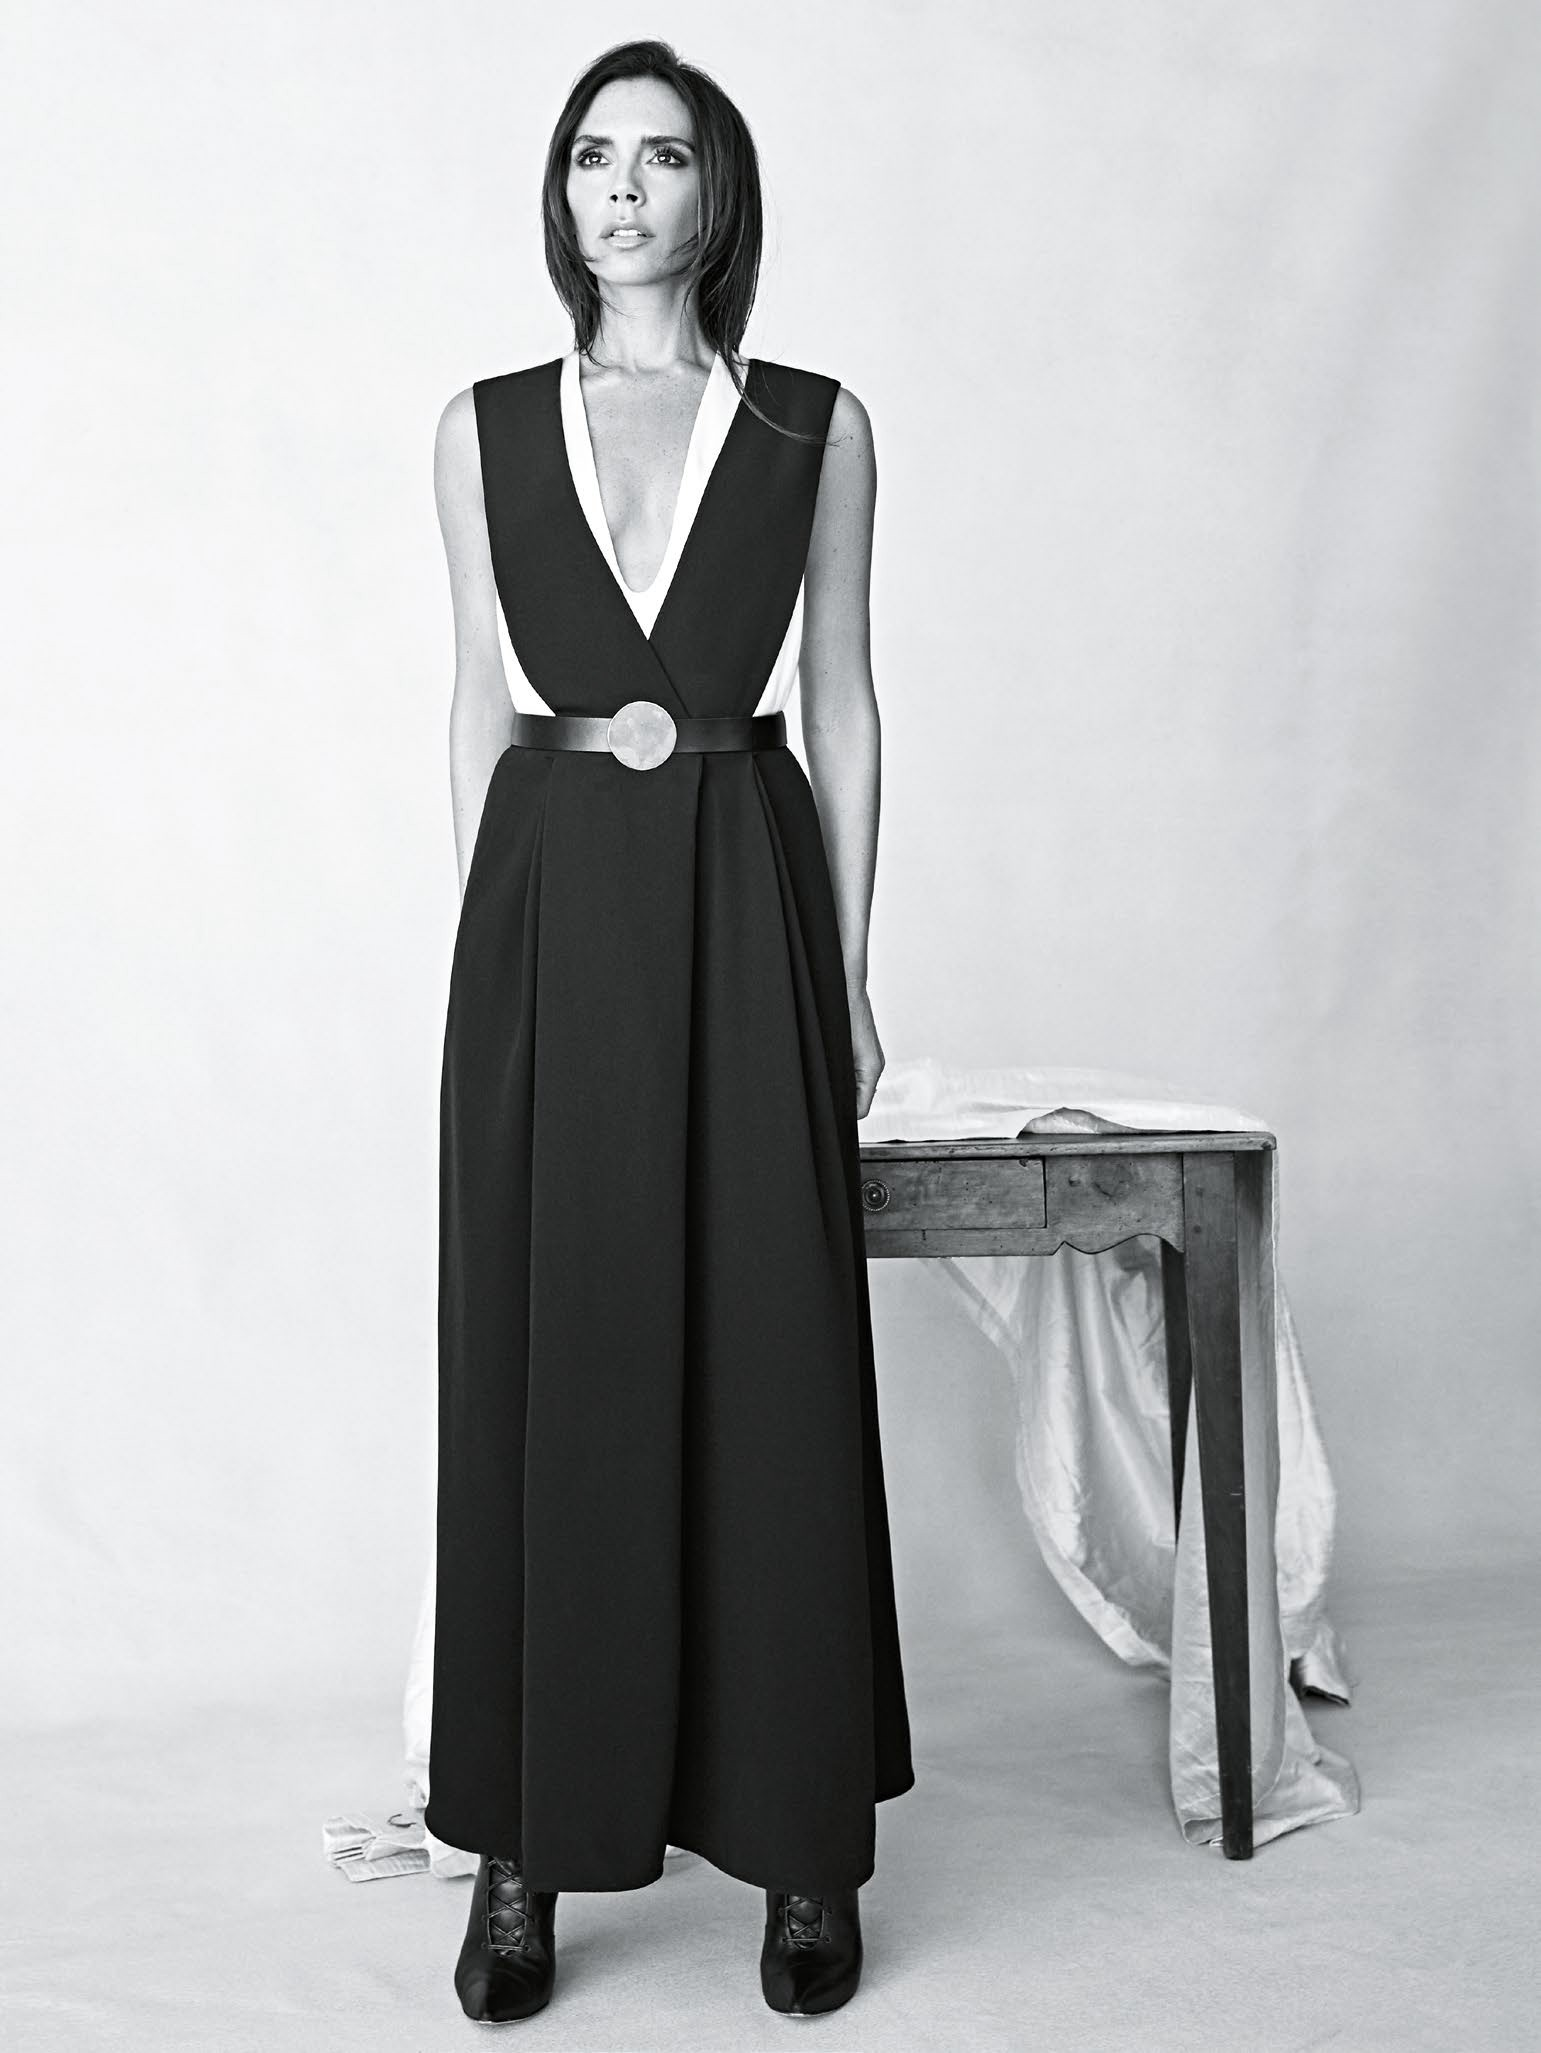 victoria-beckham-by-patrick-demarchelier-for-vogue-australia-august-2015-6